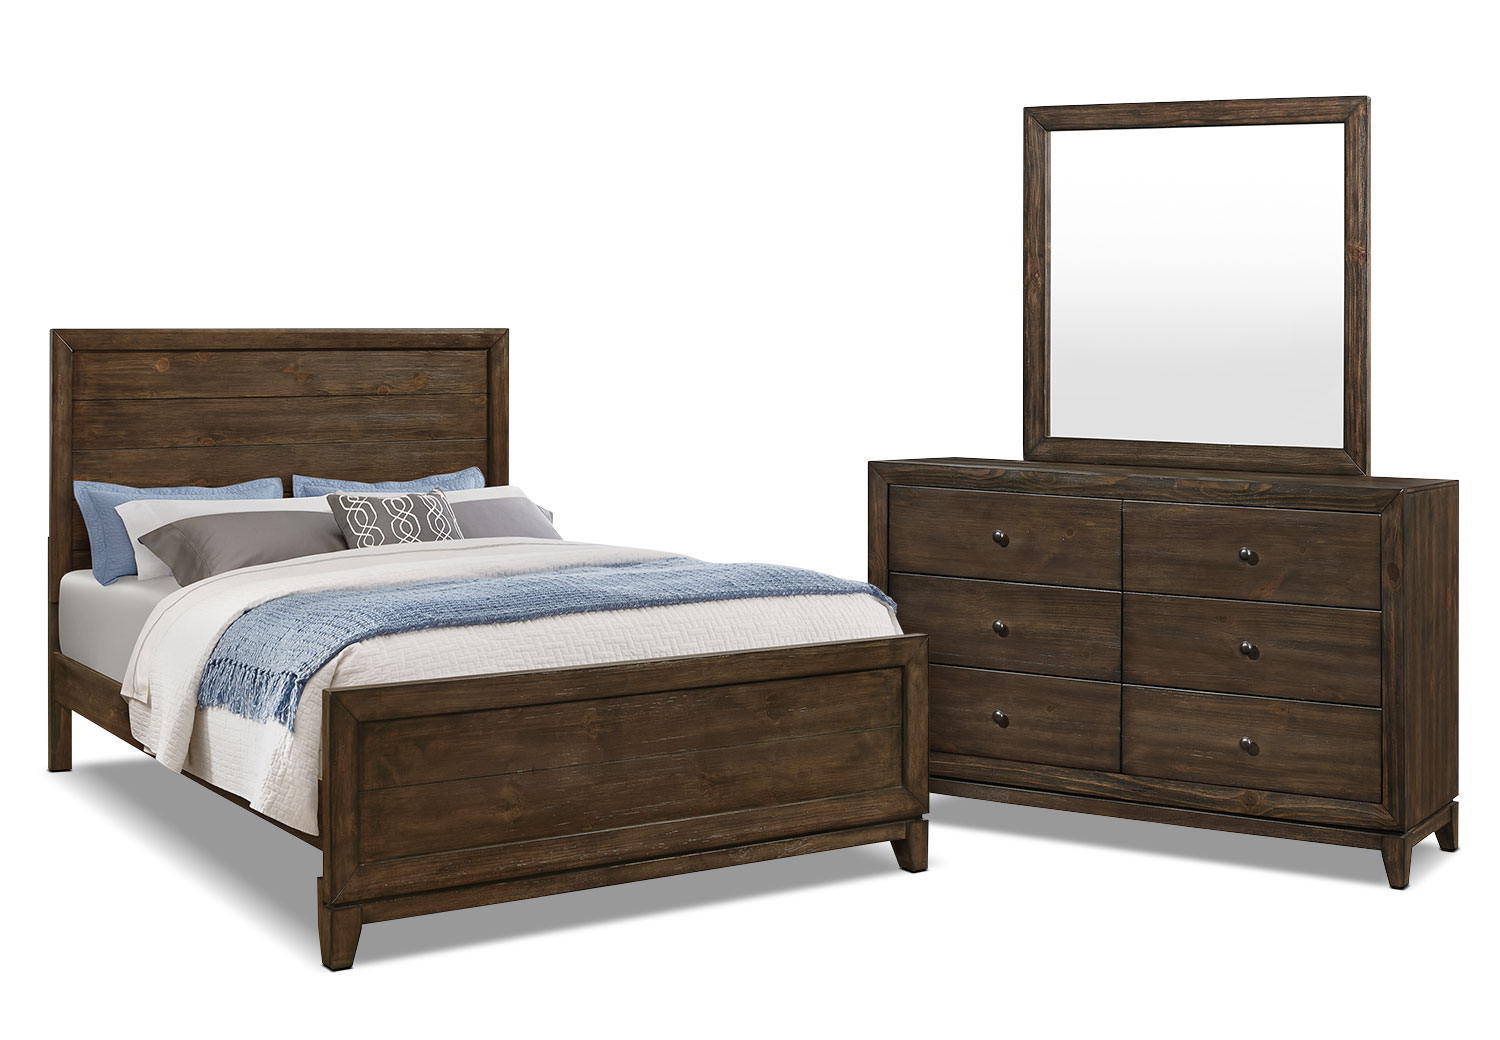 Tacoma 5 Piece Queen Bedroom Package The Brick